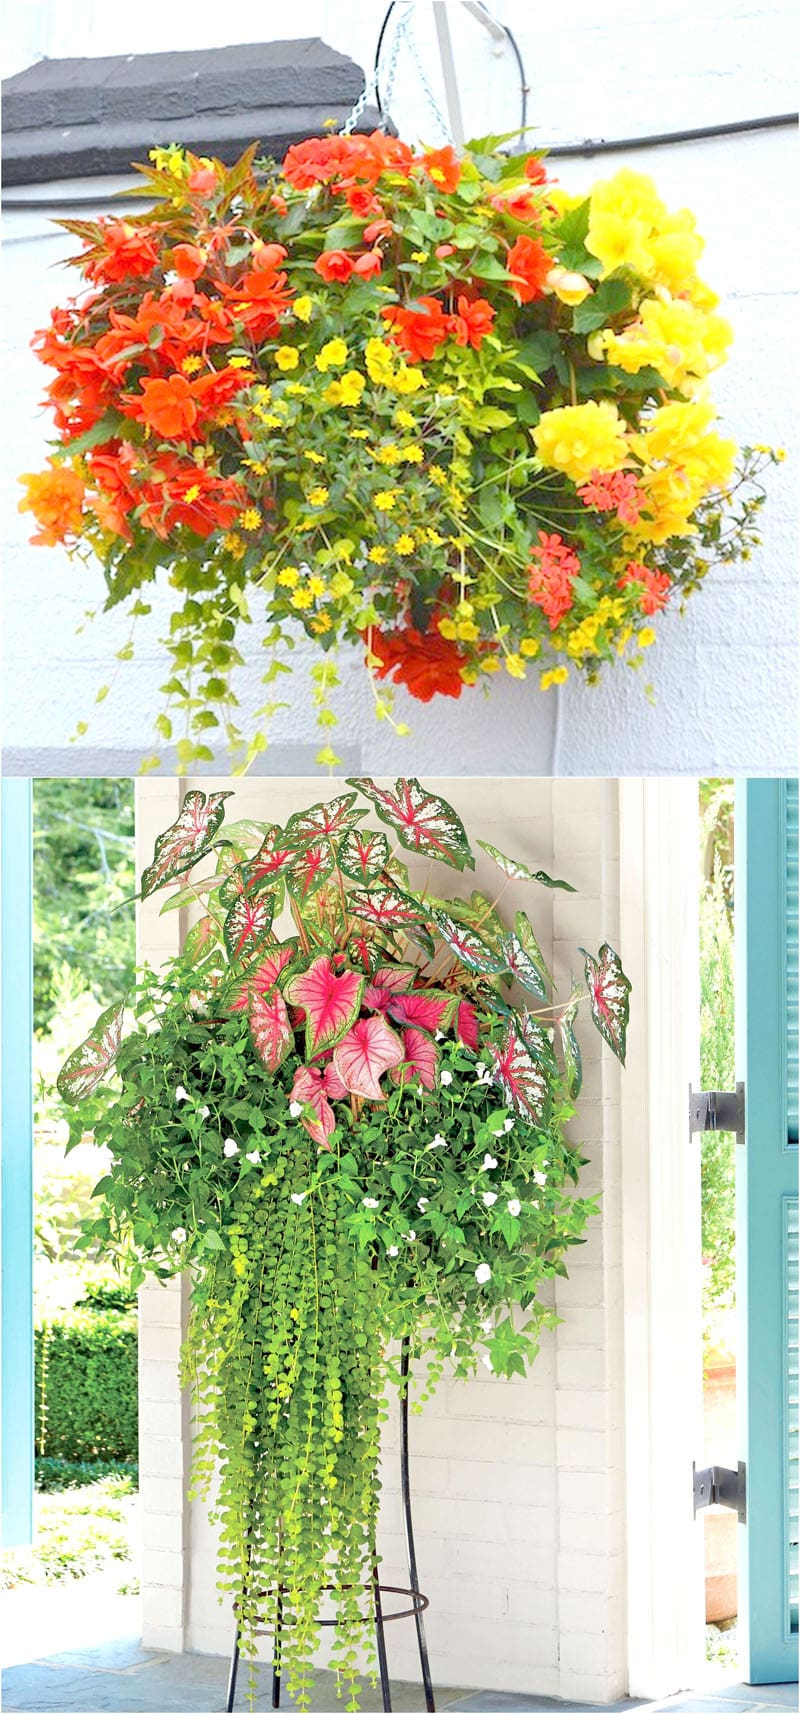 How to plant beautiful flower hanging baskets 20 best for How to hang flowers